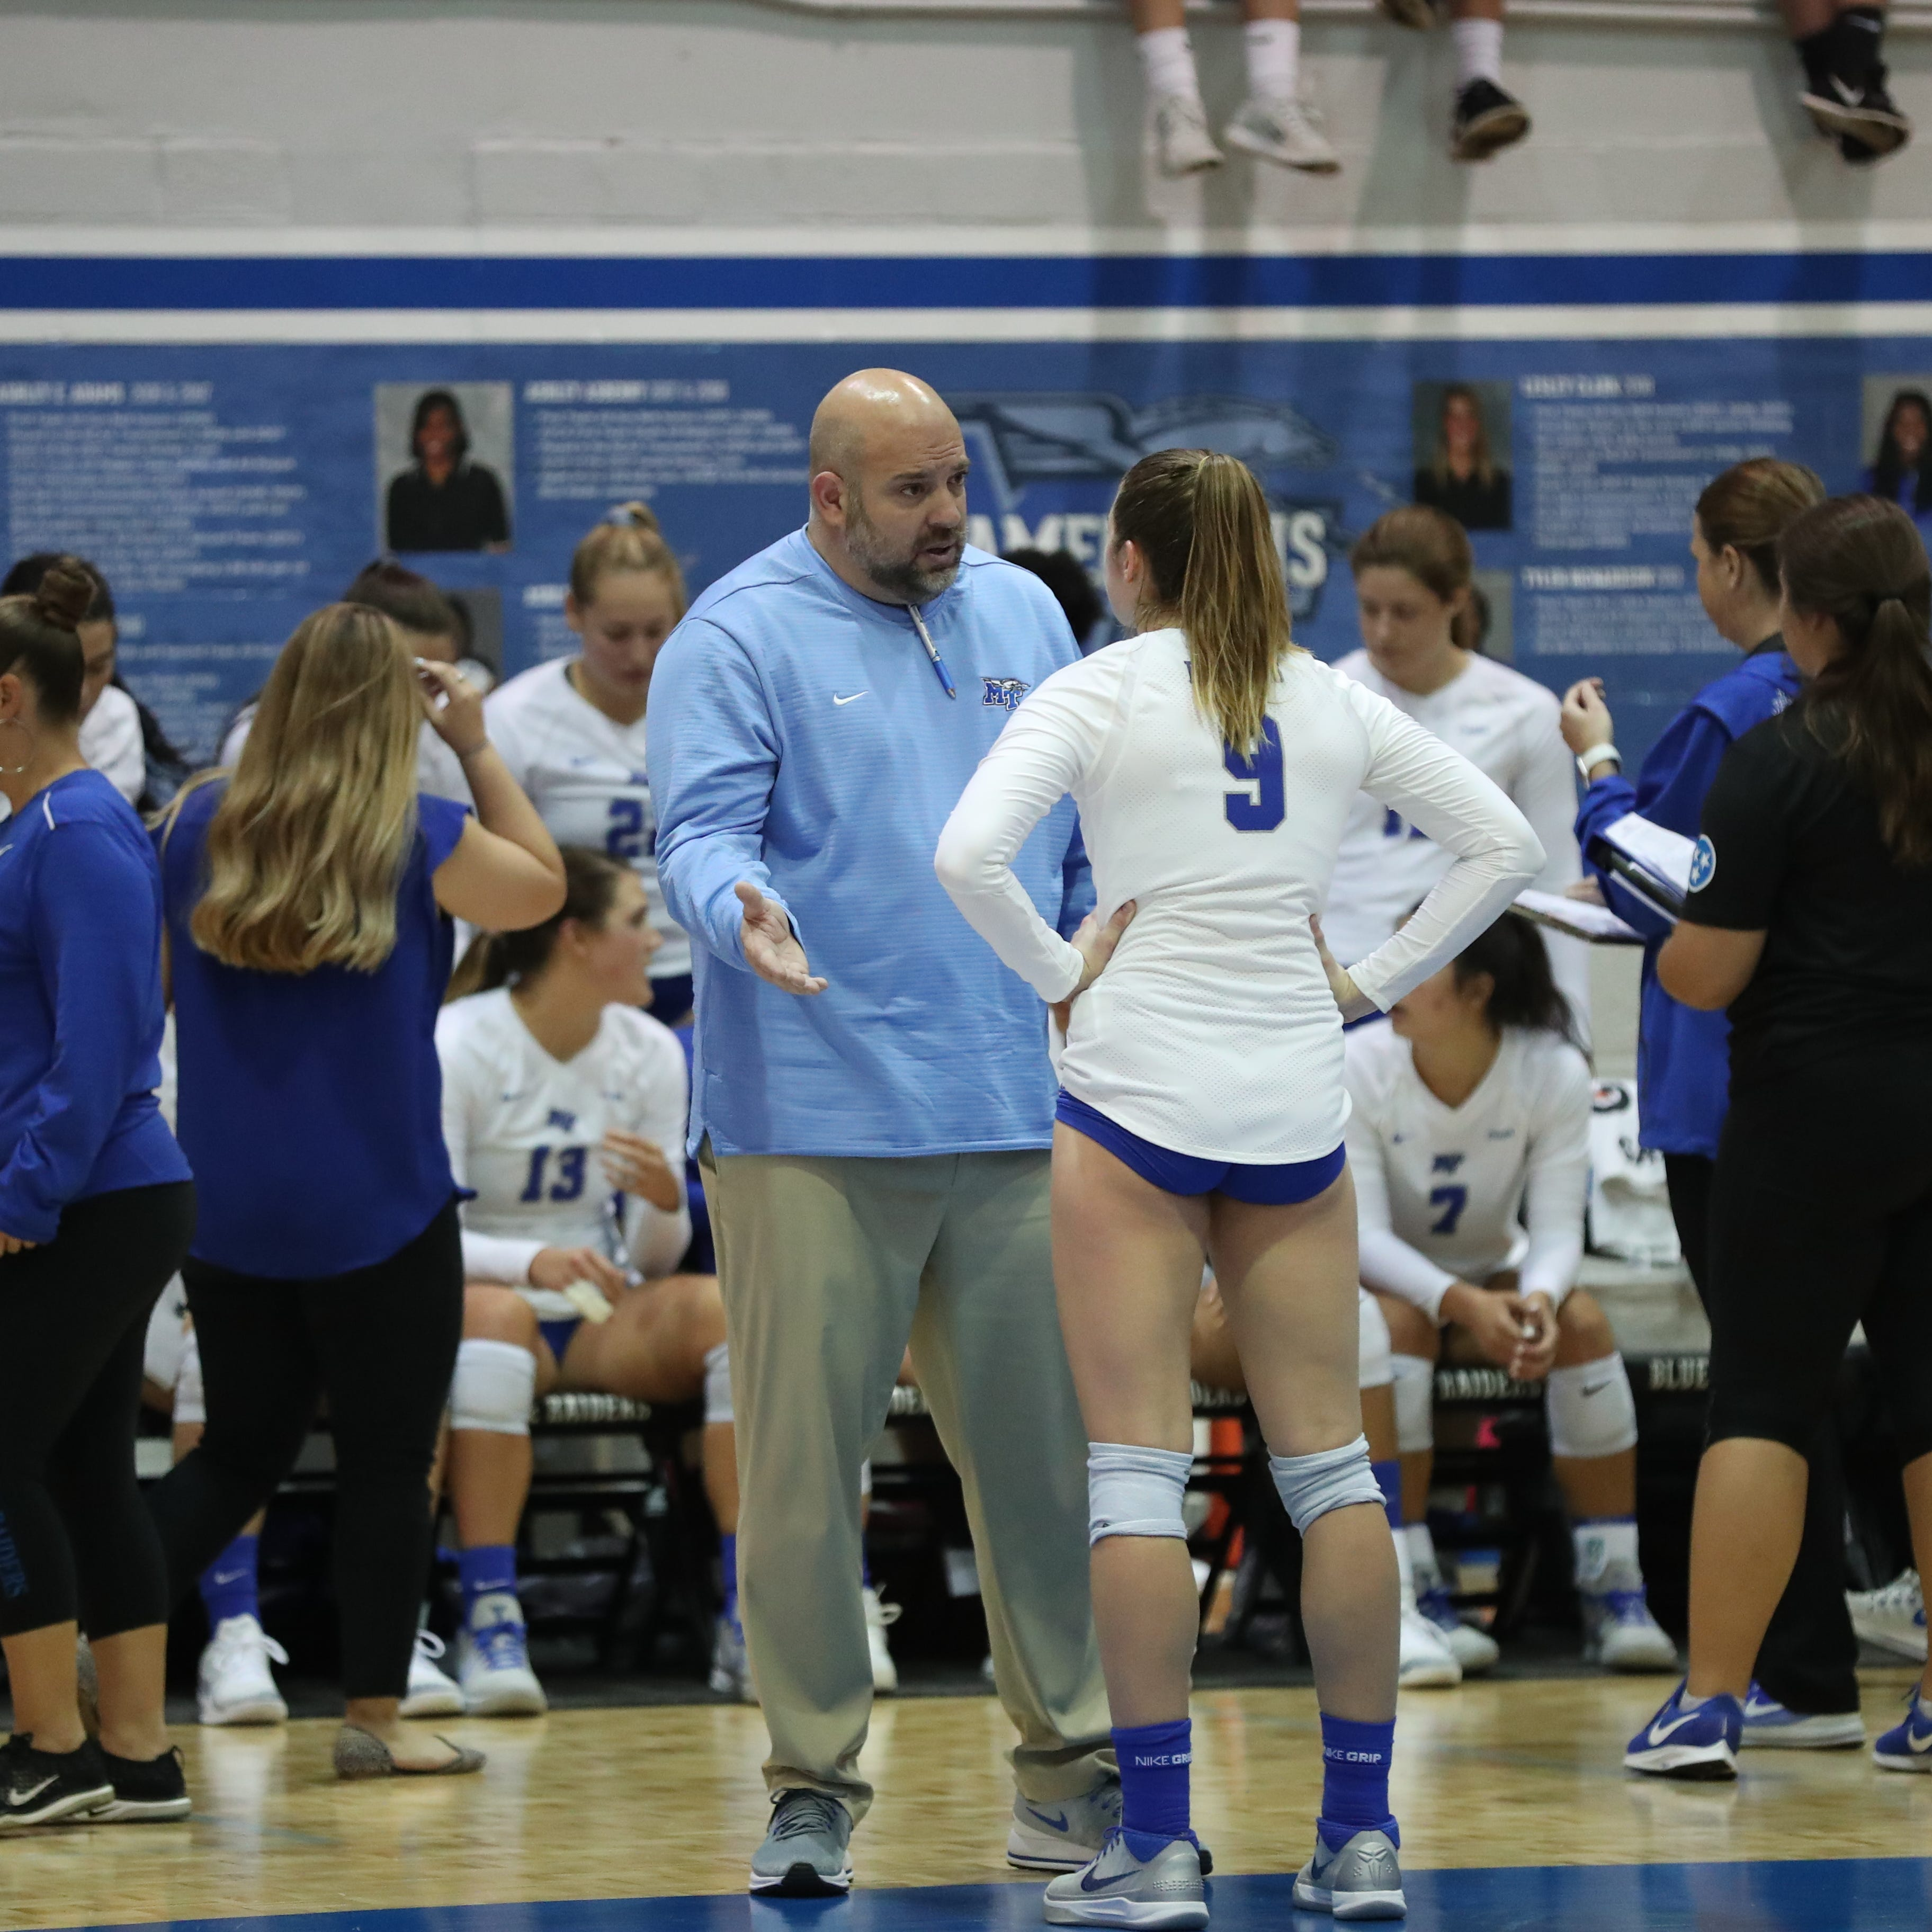 Suspended MTSU volleyball coach Chuck Crawford explains allegations on message board